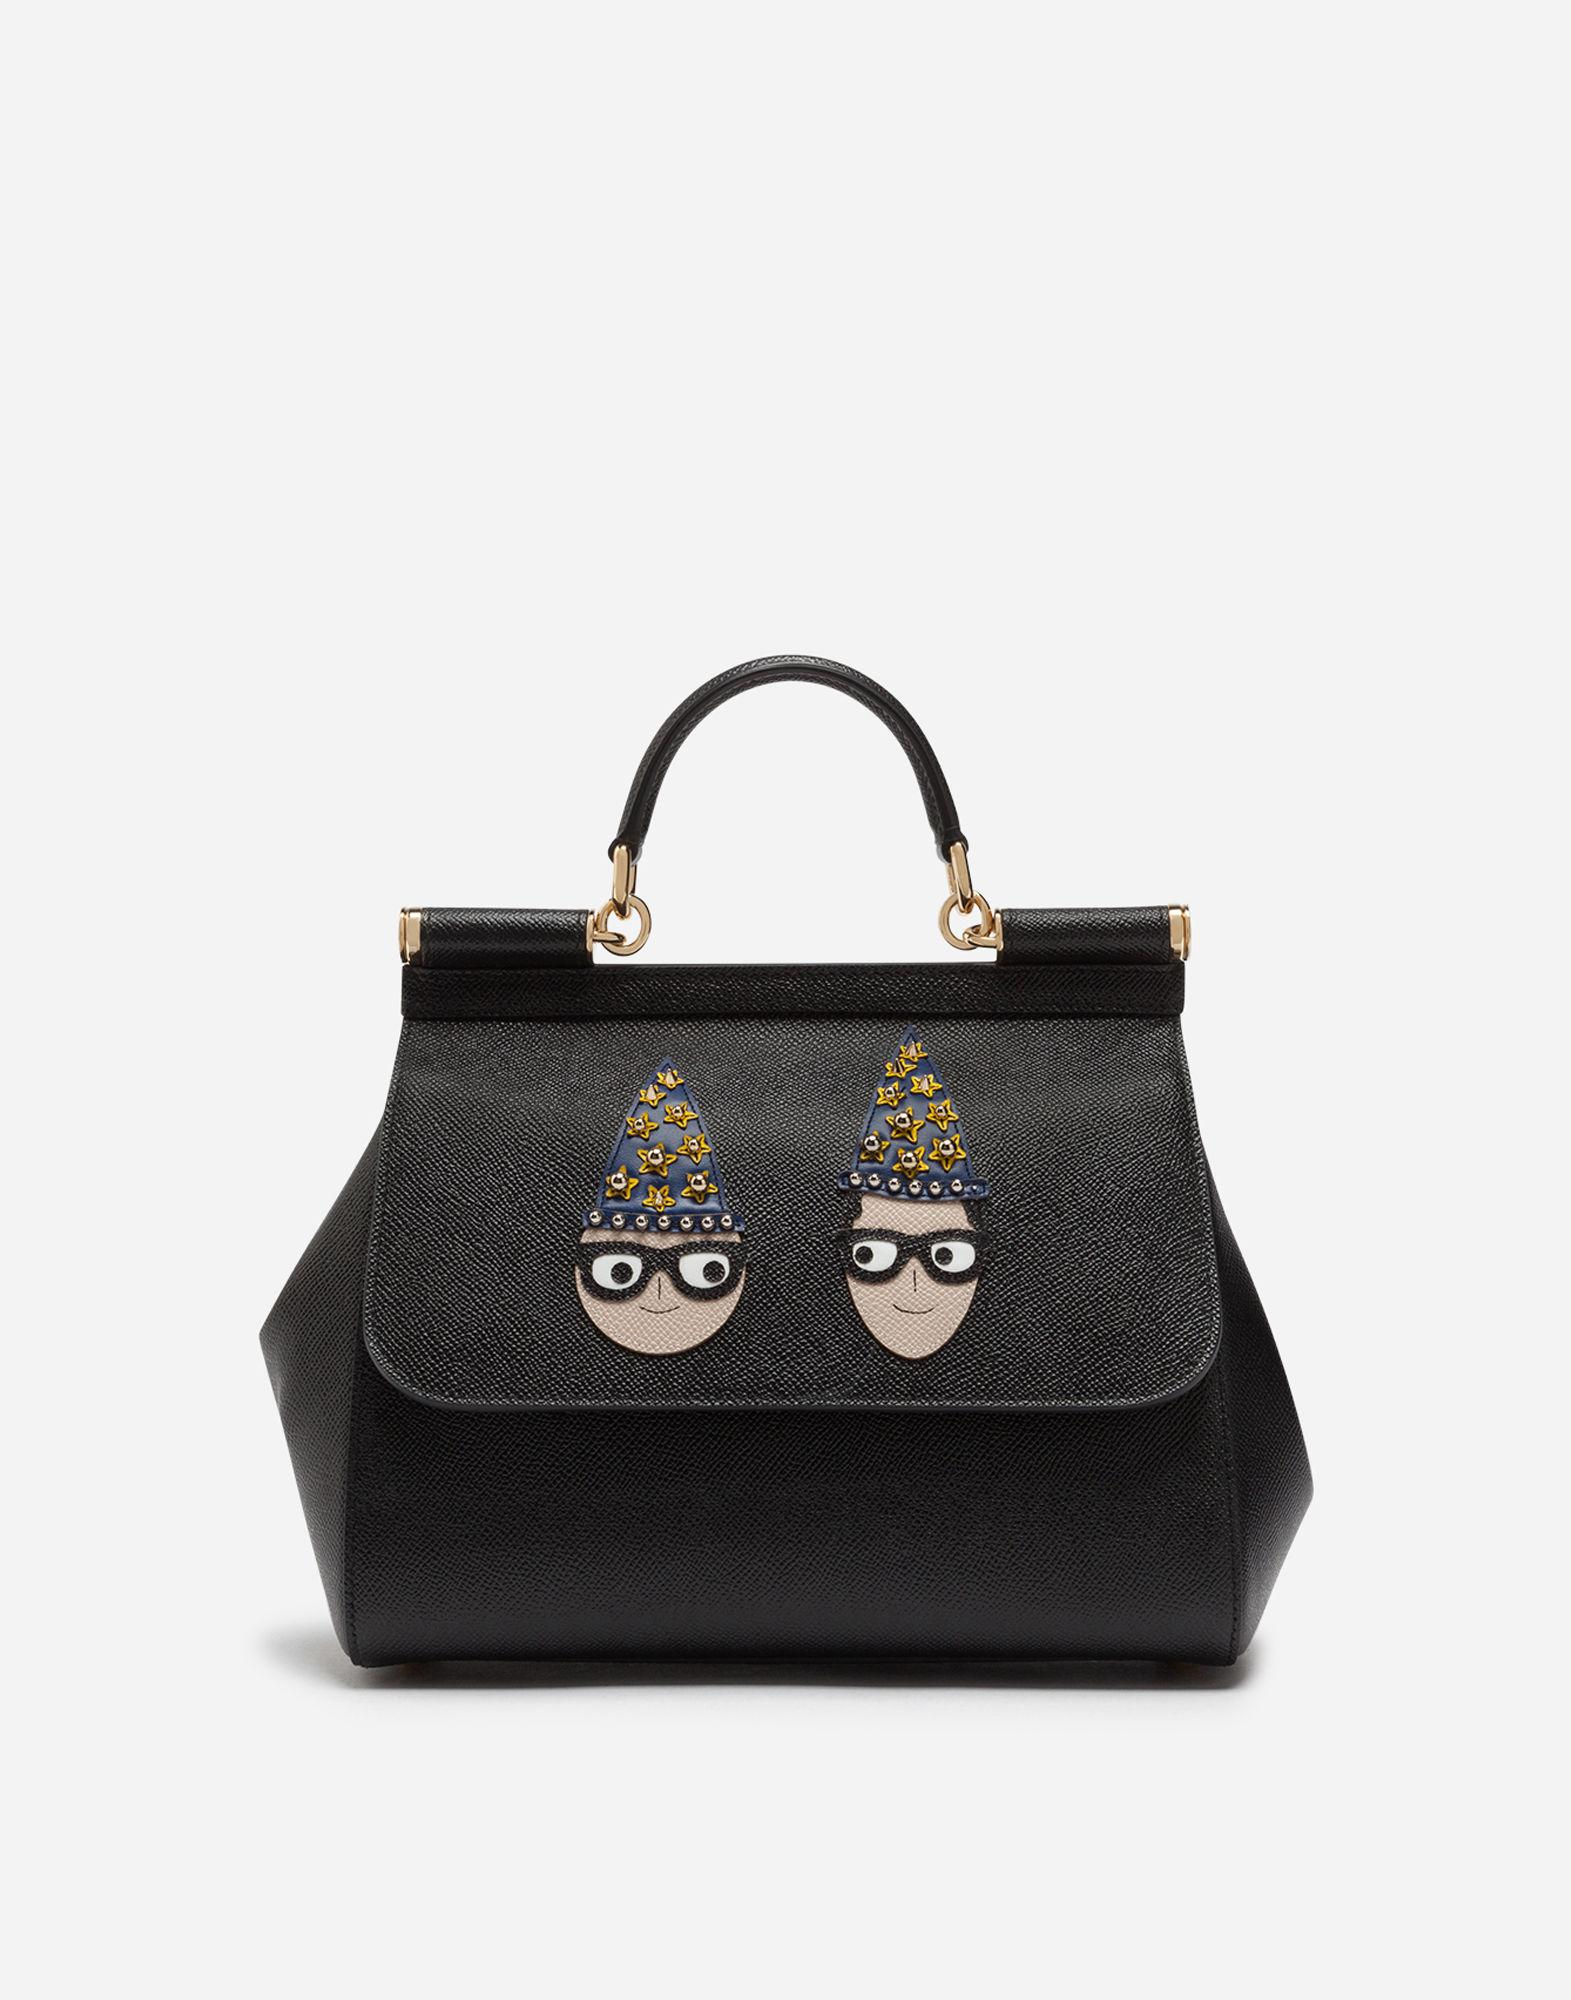 3e6949c0117 Lyst - Dolce   Gabbana Medium Sicily Bag In Dauphine Calfskin With ...